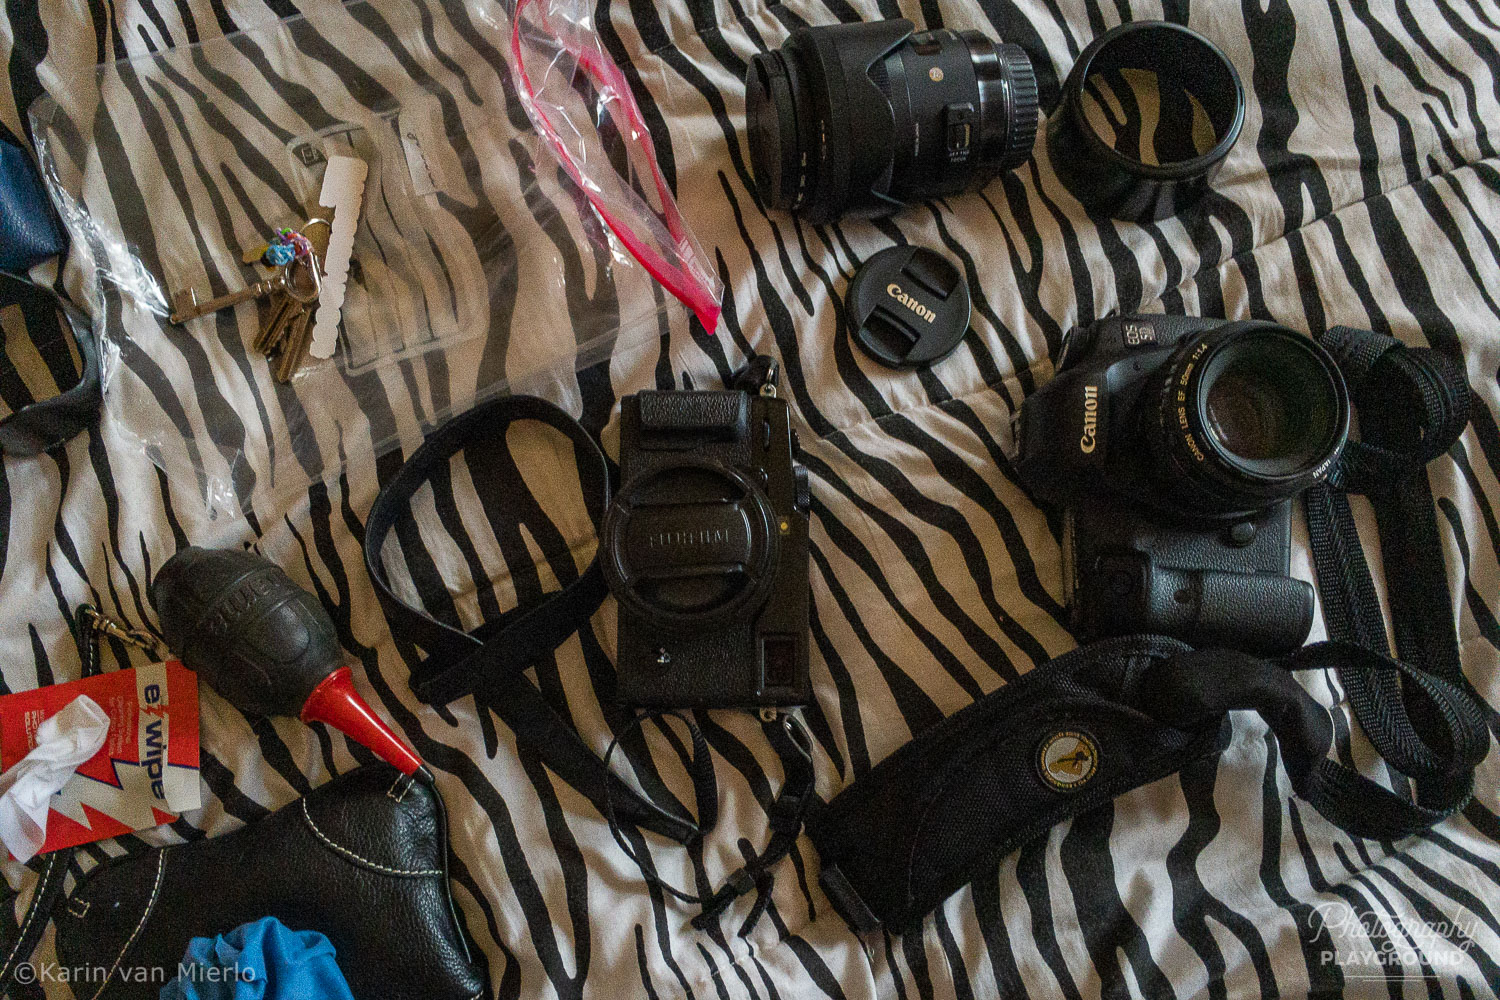 travel photography safety tips | Photo: My cameras on the bed © Karin van Mierlo, Photography Playground